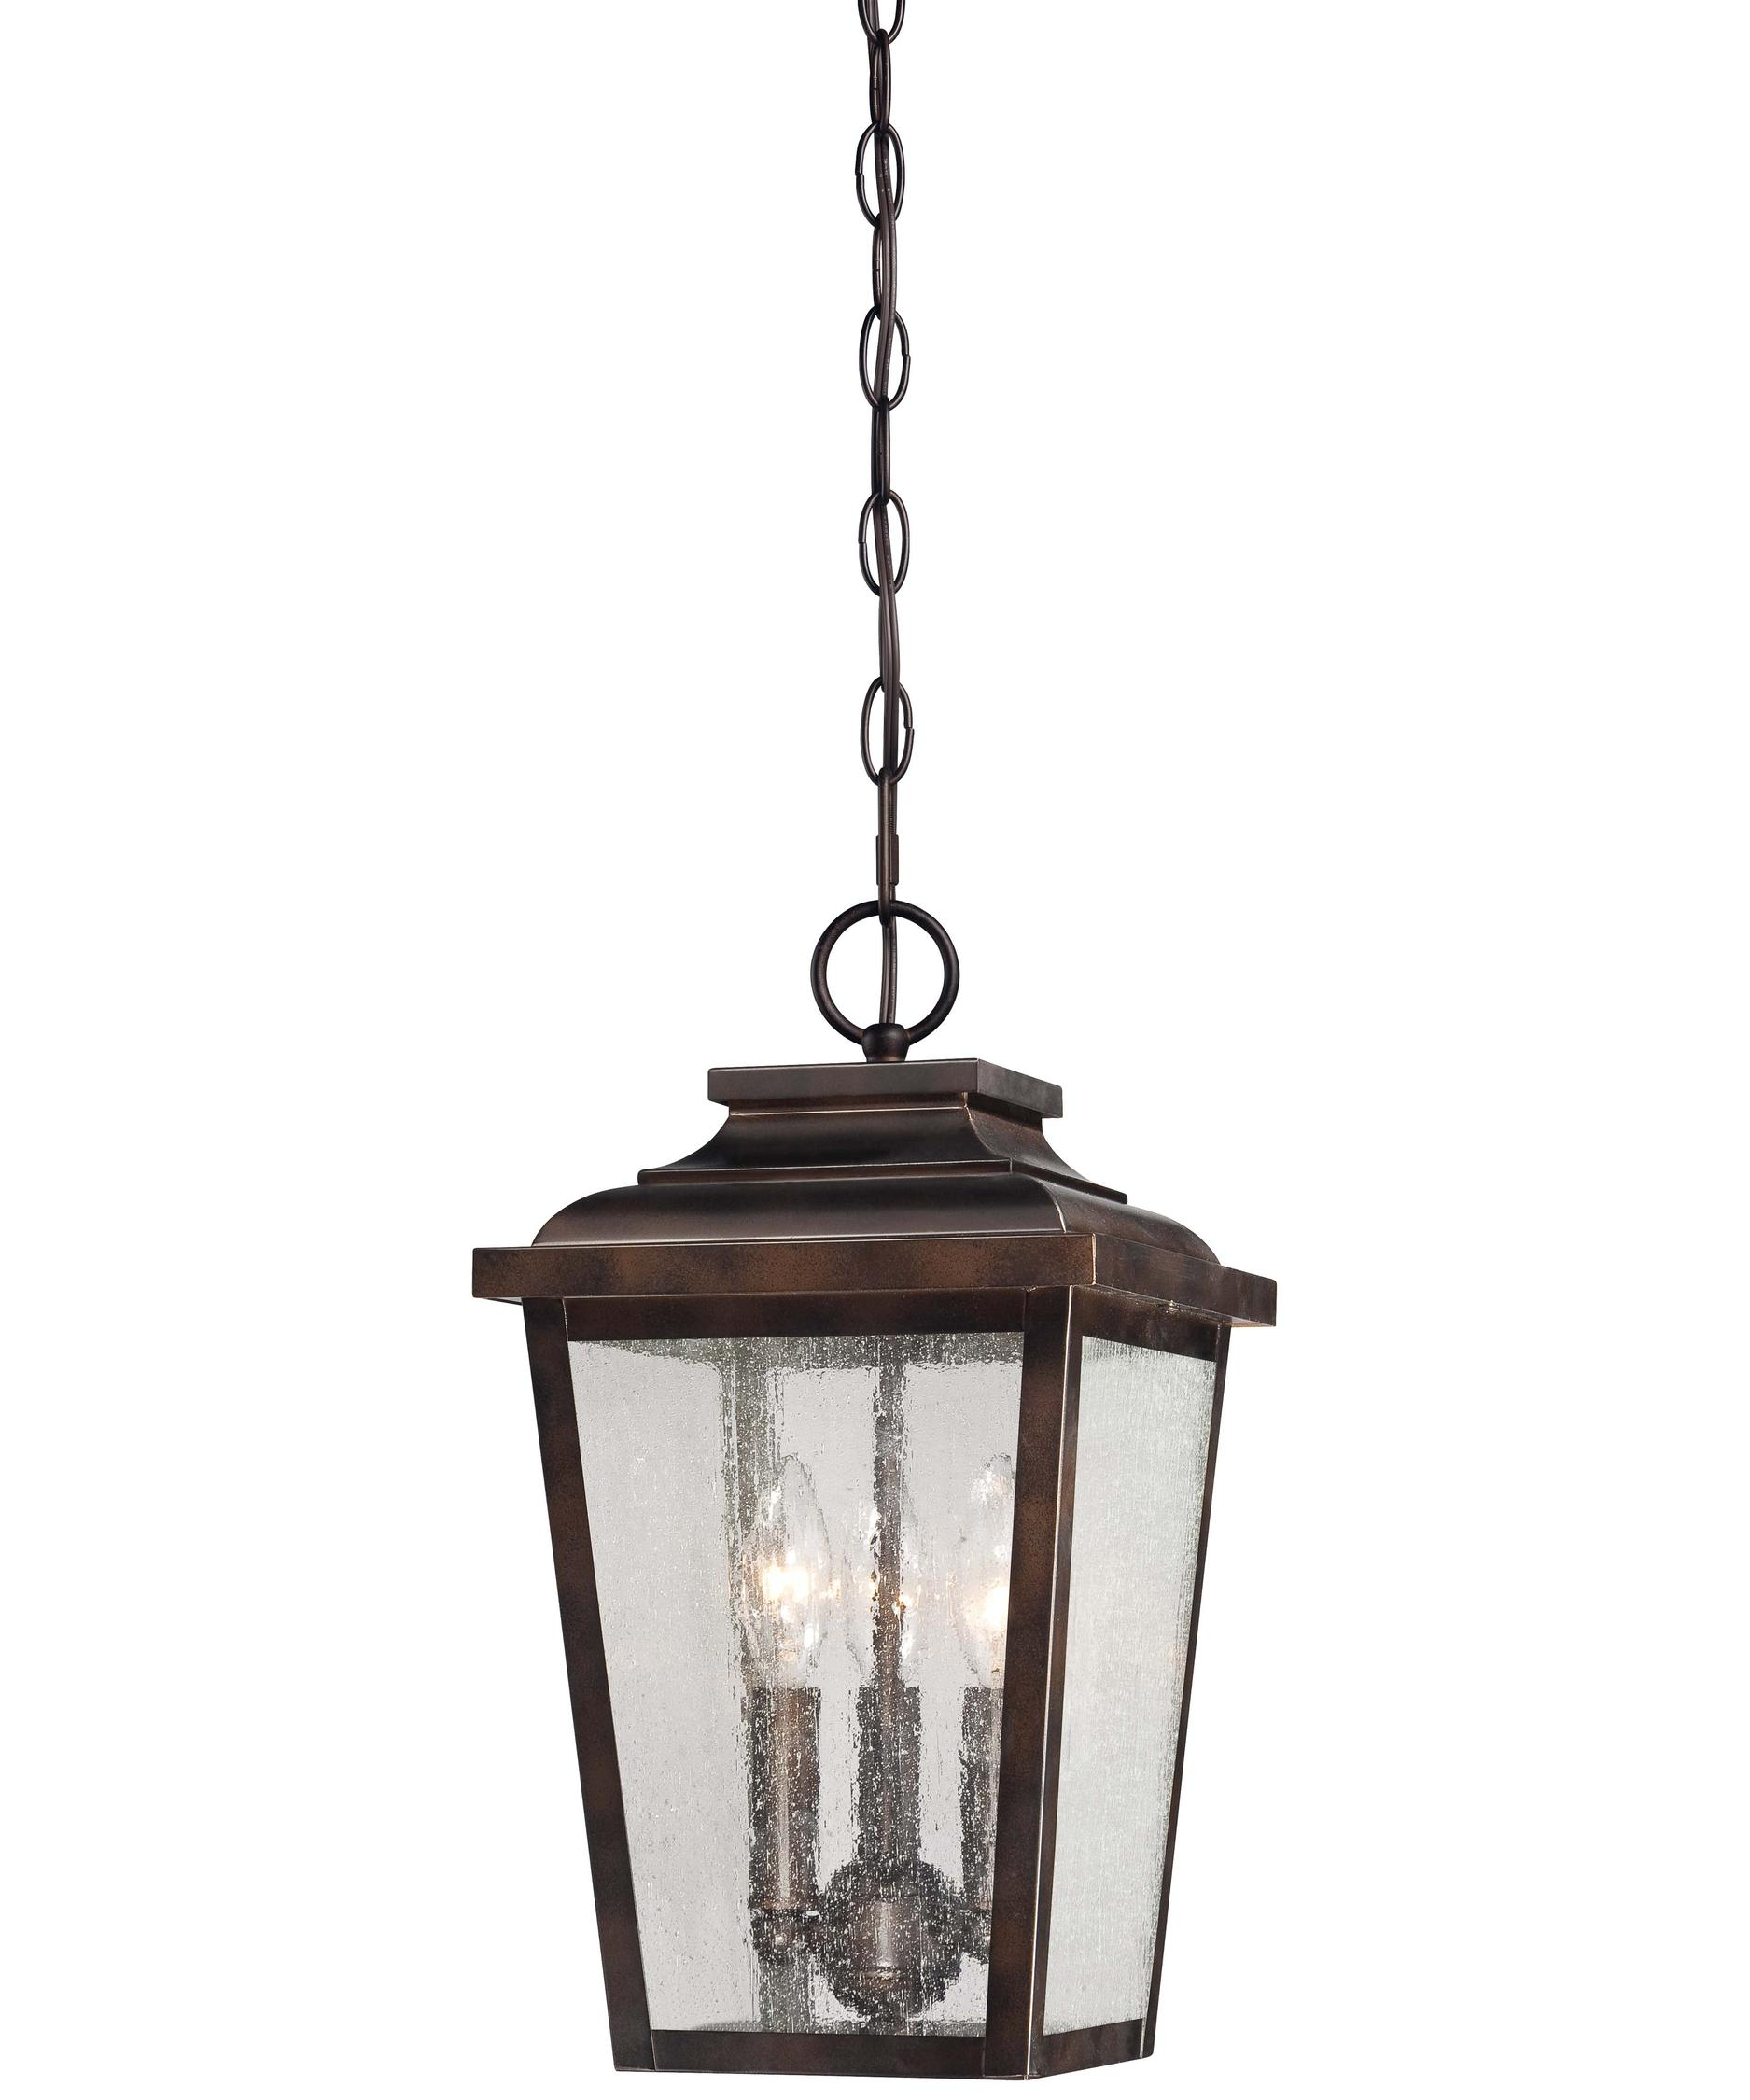 Image Gallery Large Lantern Outdoor Lighting